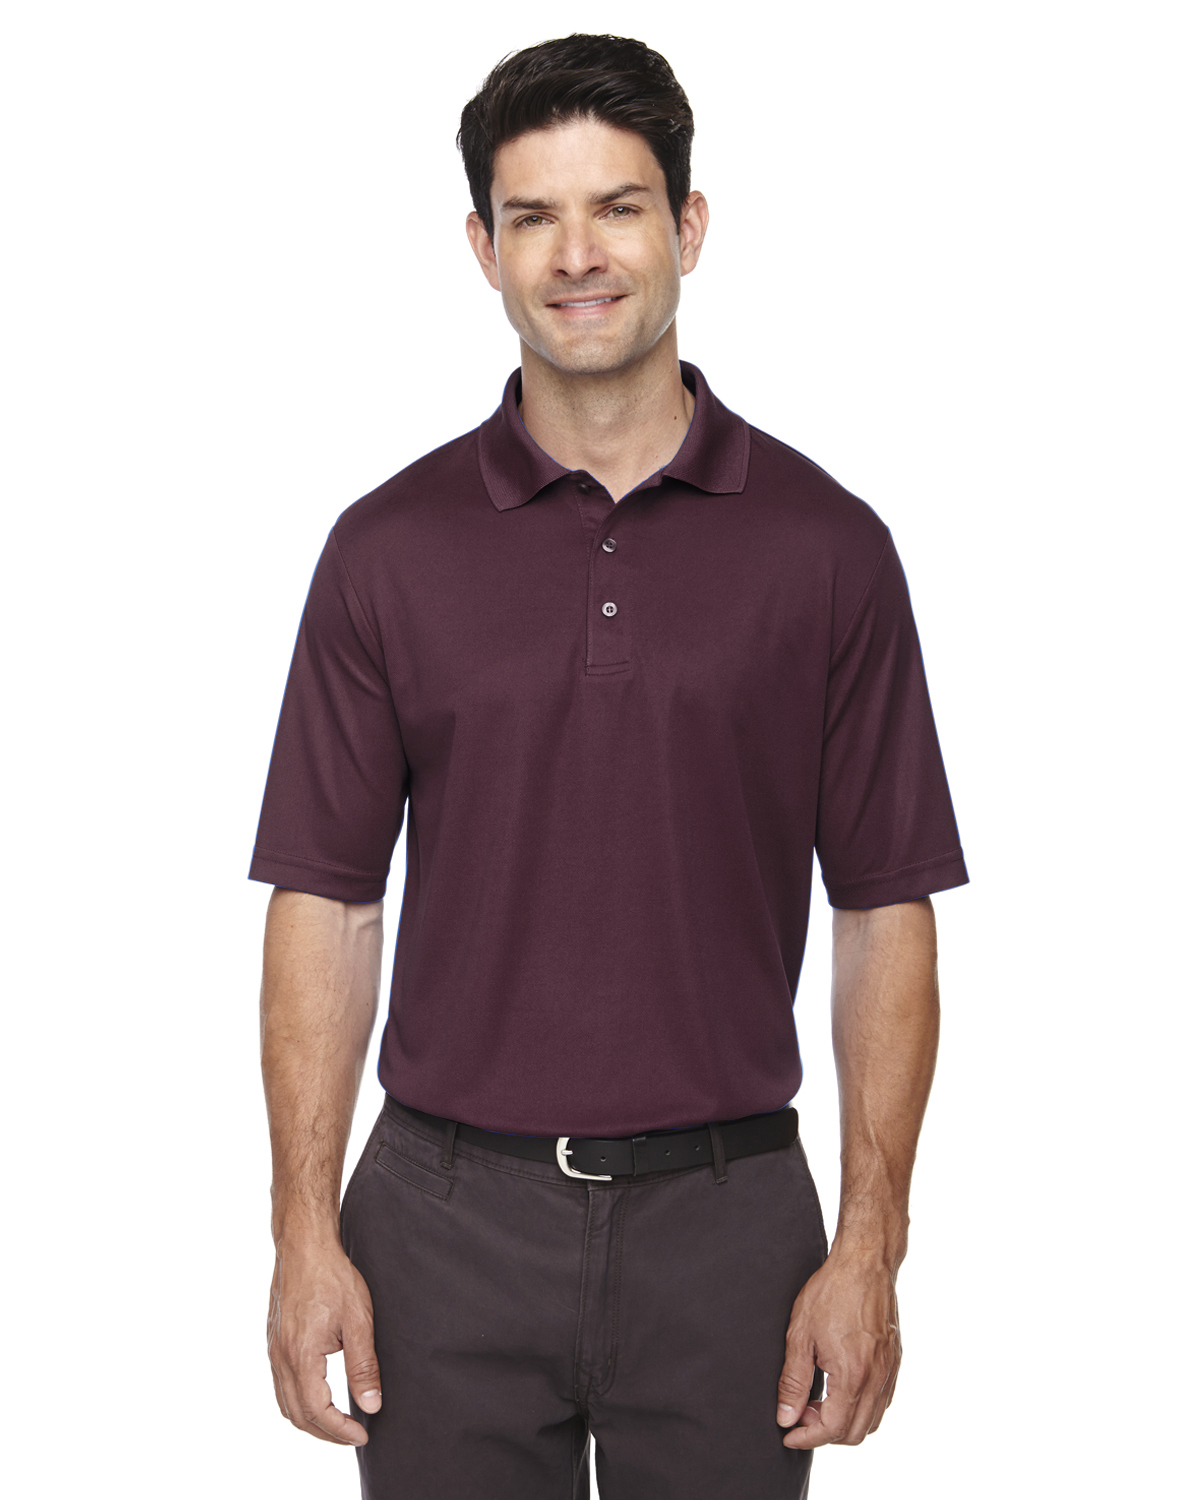 New core 365 men 39 s 100 polyester performance piqu polo s for Men s polyester polo shirts